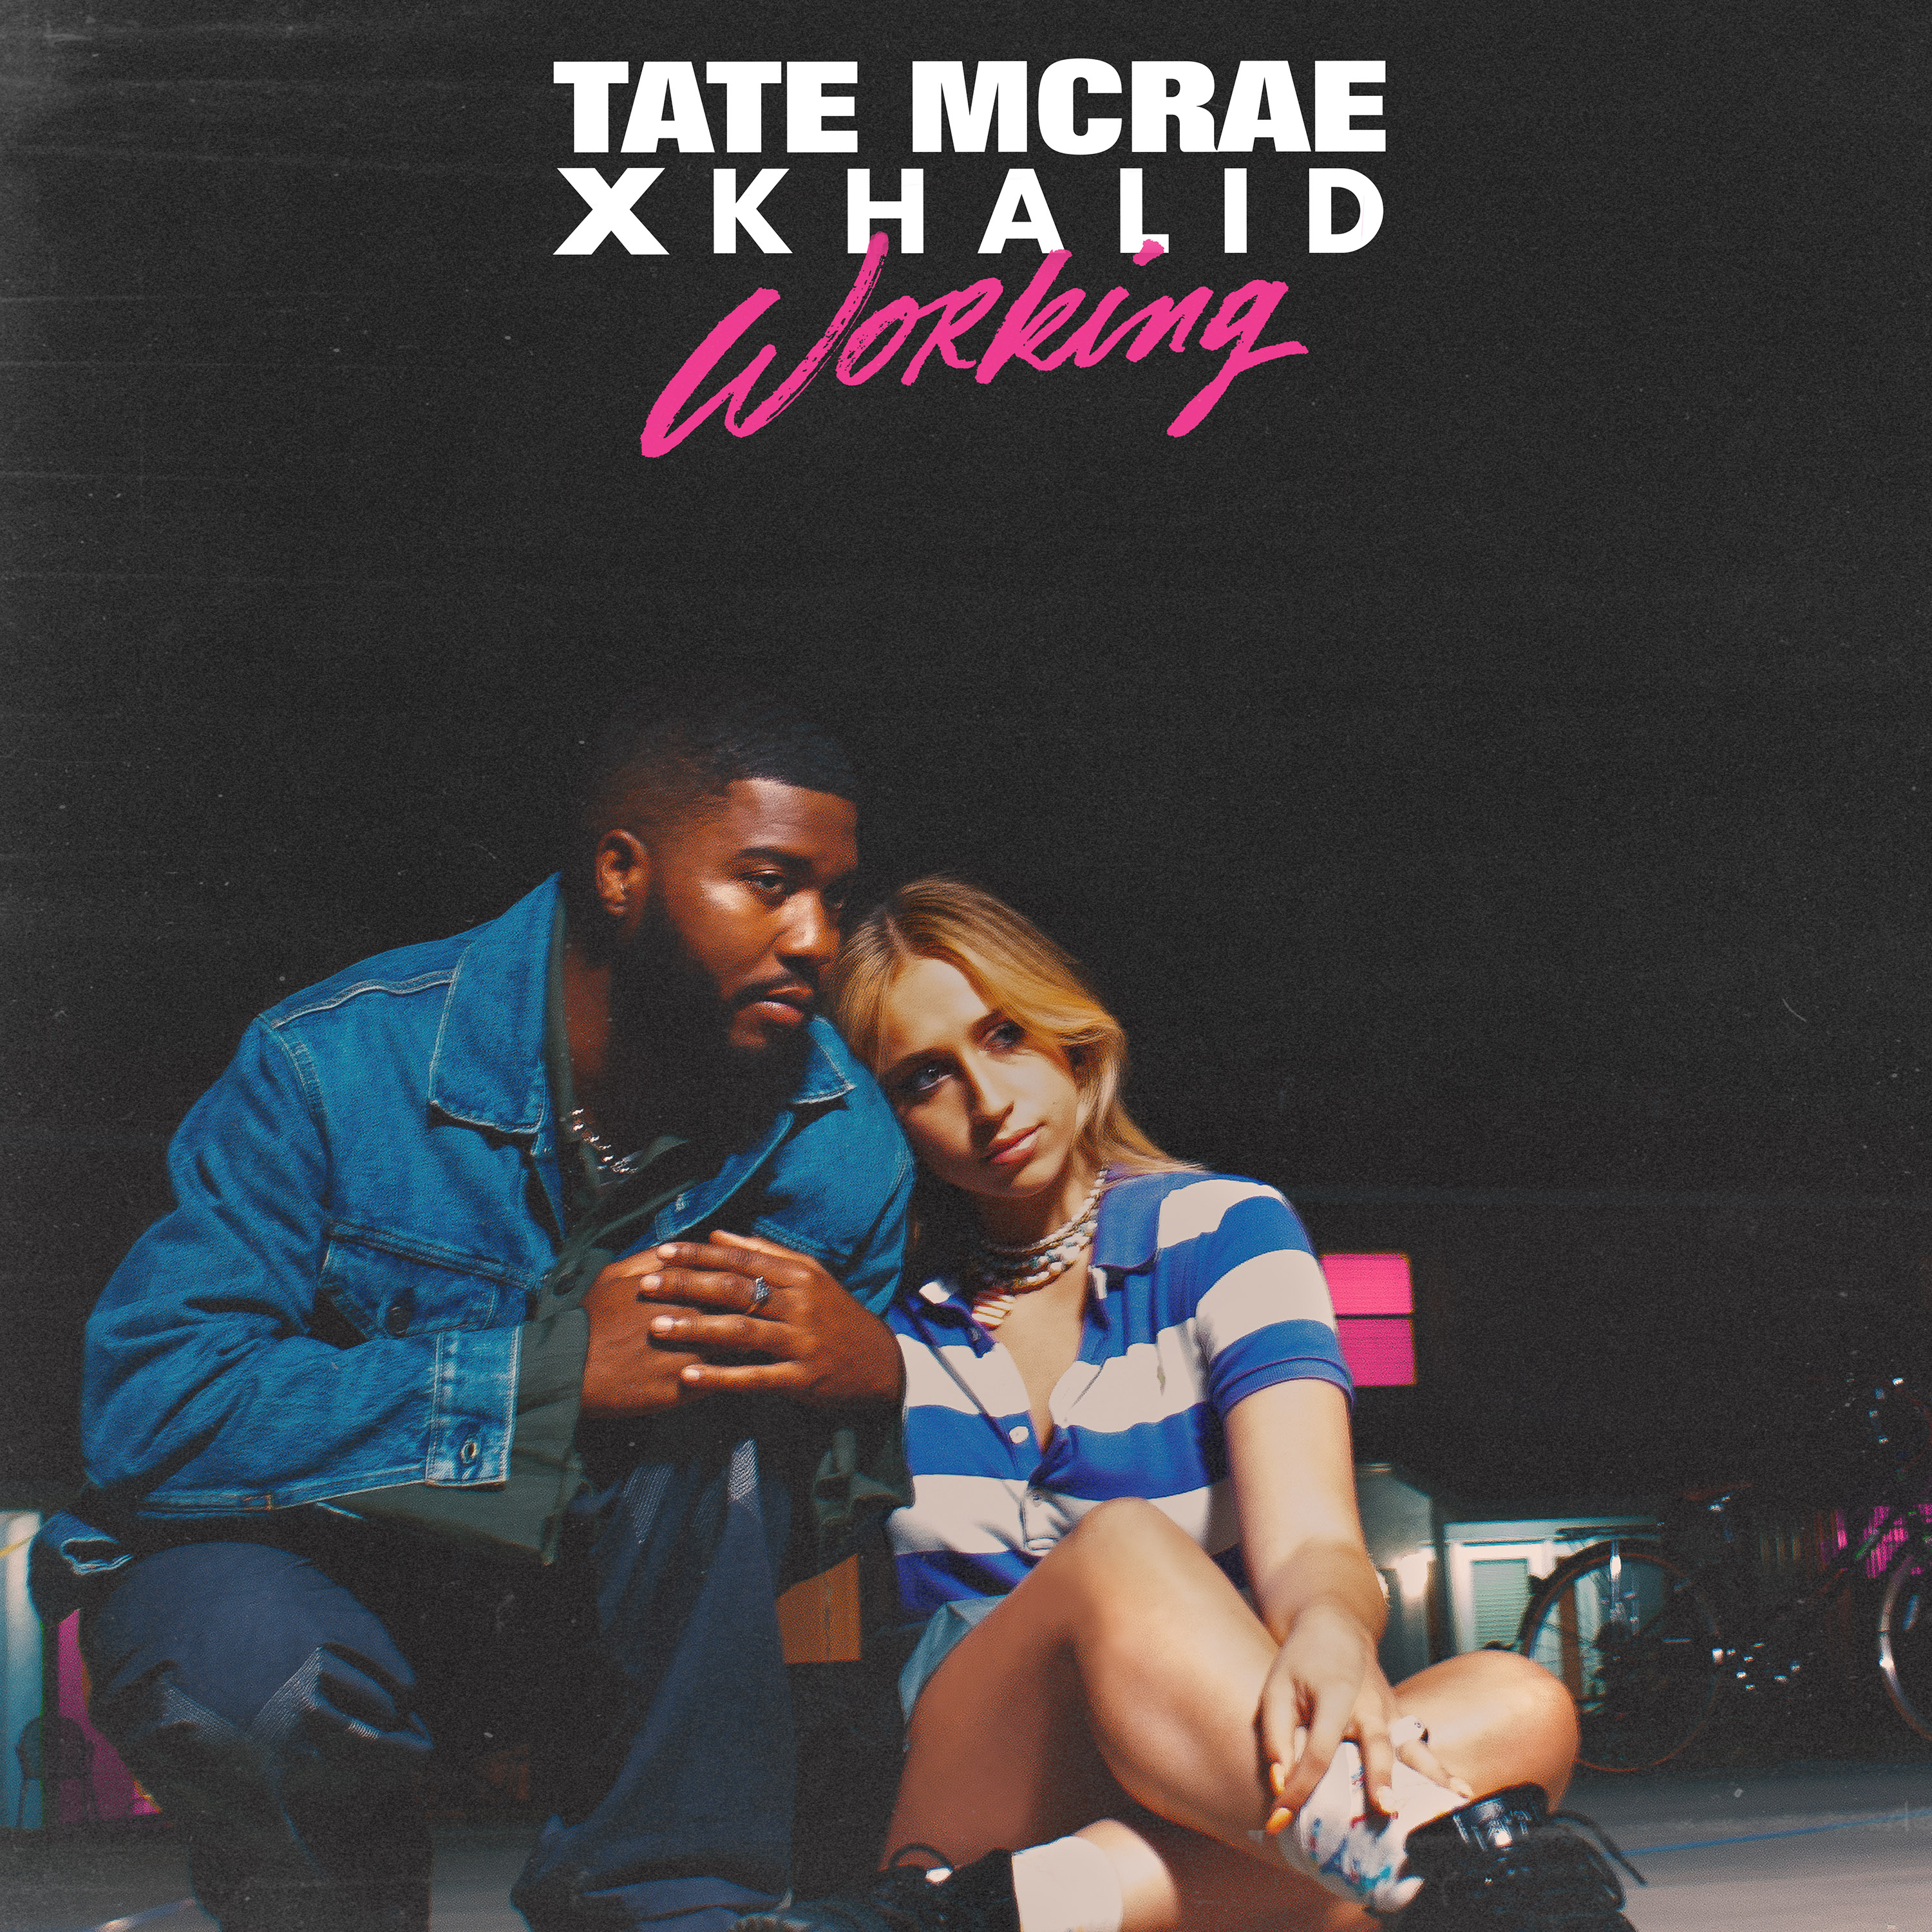 """Tate McRae and Khalid are now """"Working"""" together"""